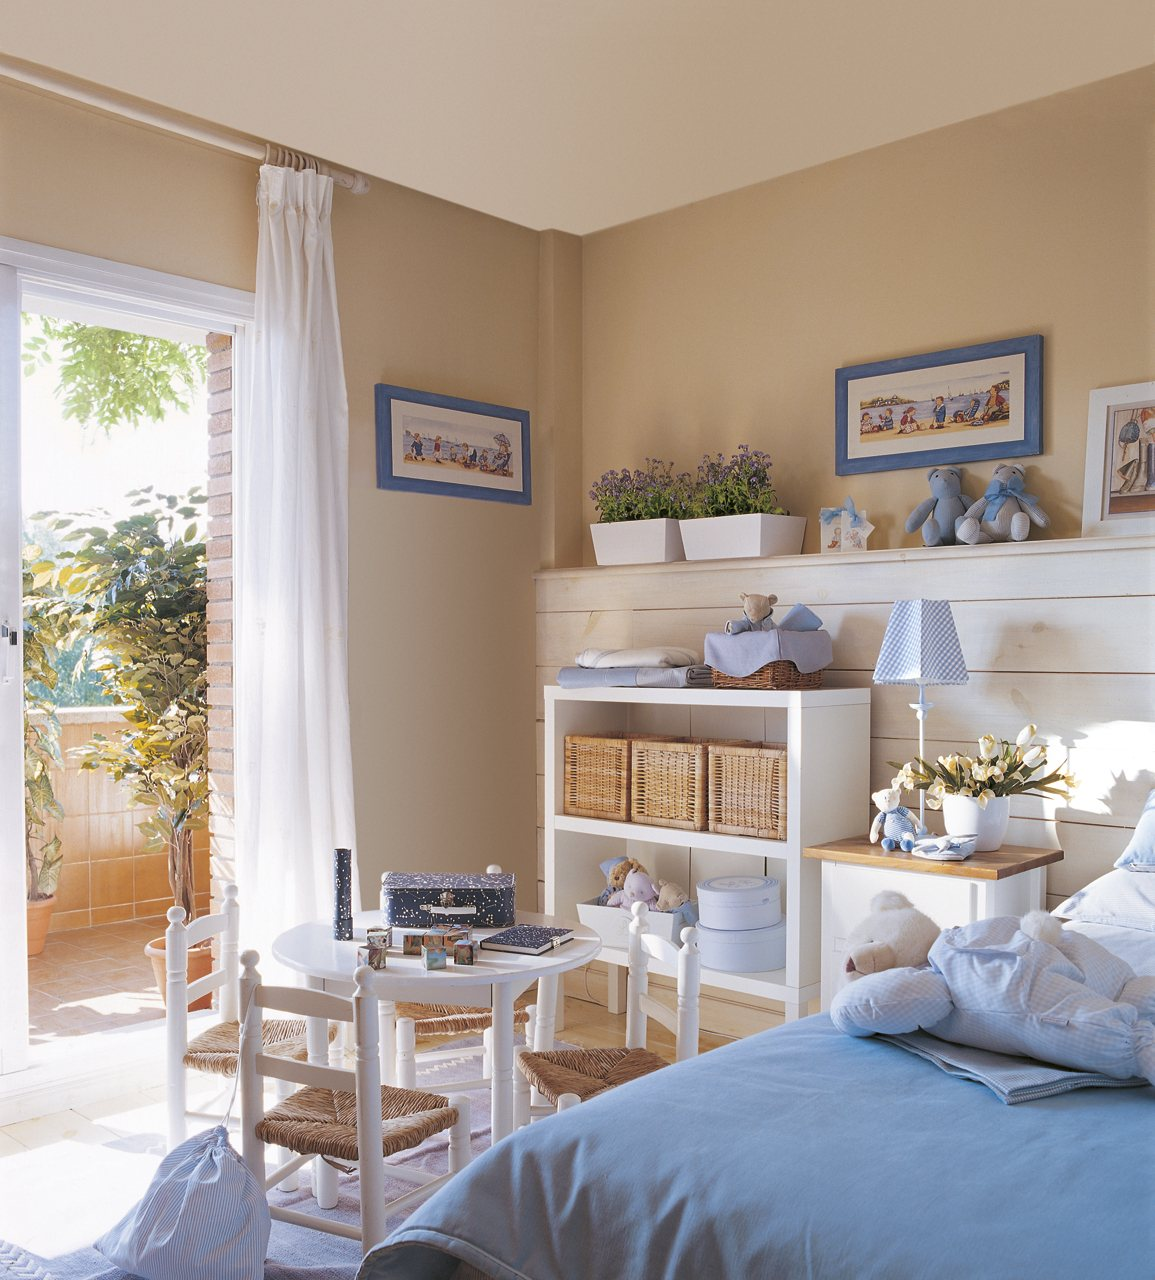 Blog by nela habitaciones infantiles sanas y ecol gicas children 39 s rooms healthy and ecological - Habitaciones infantiles decoracion ...